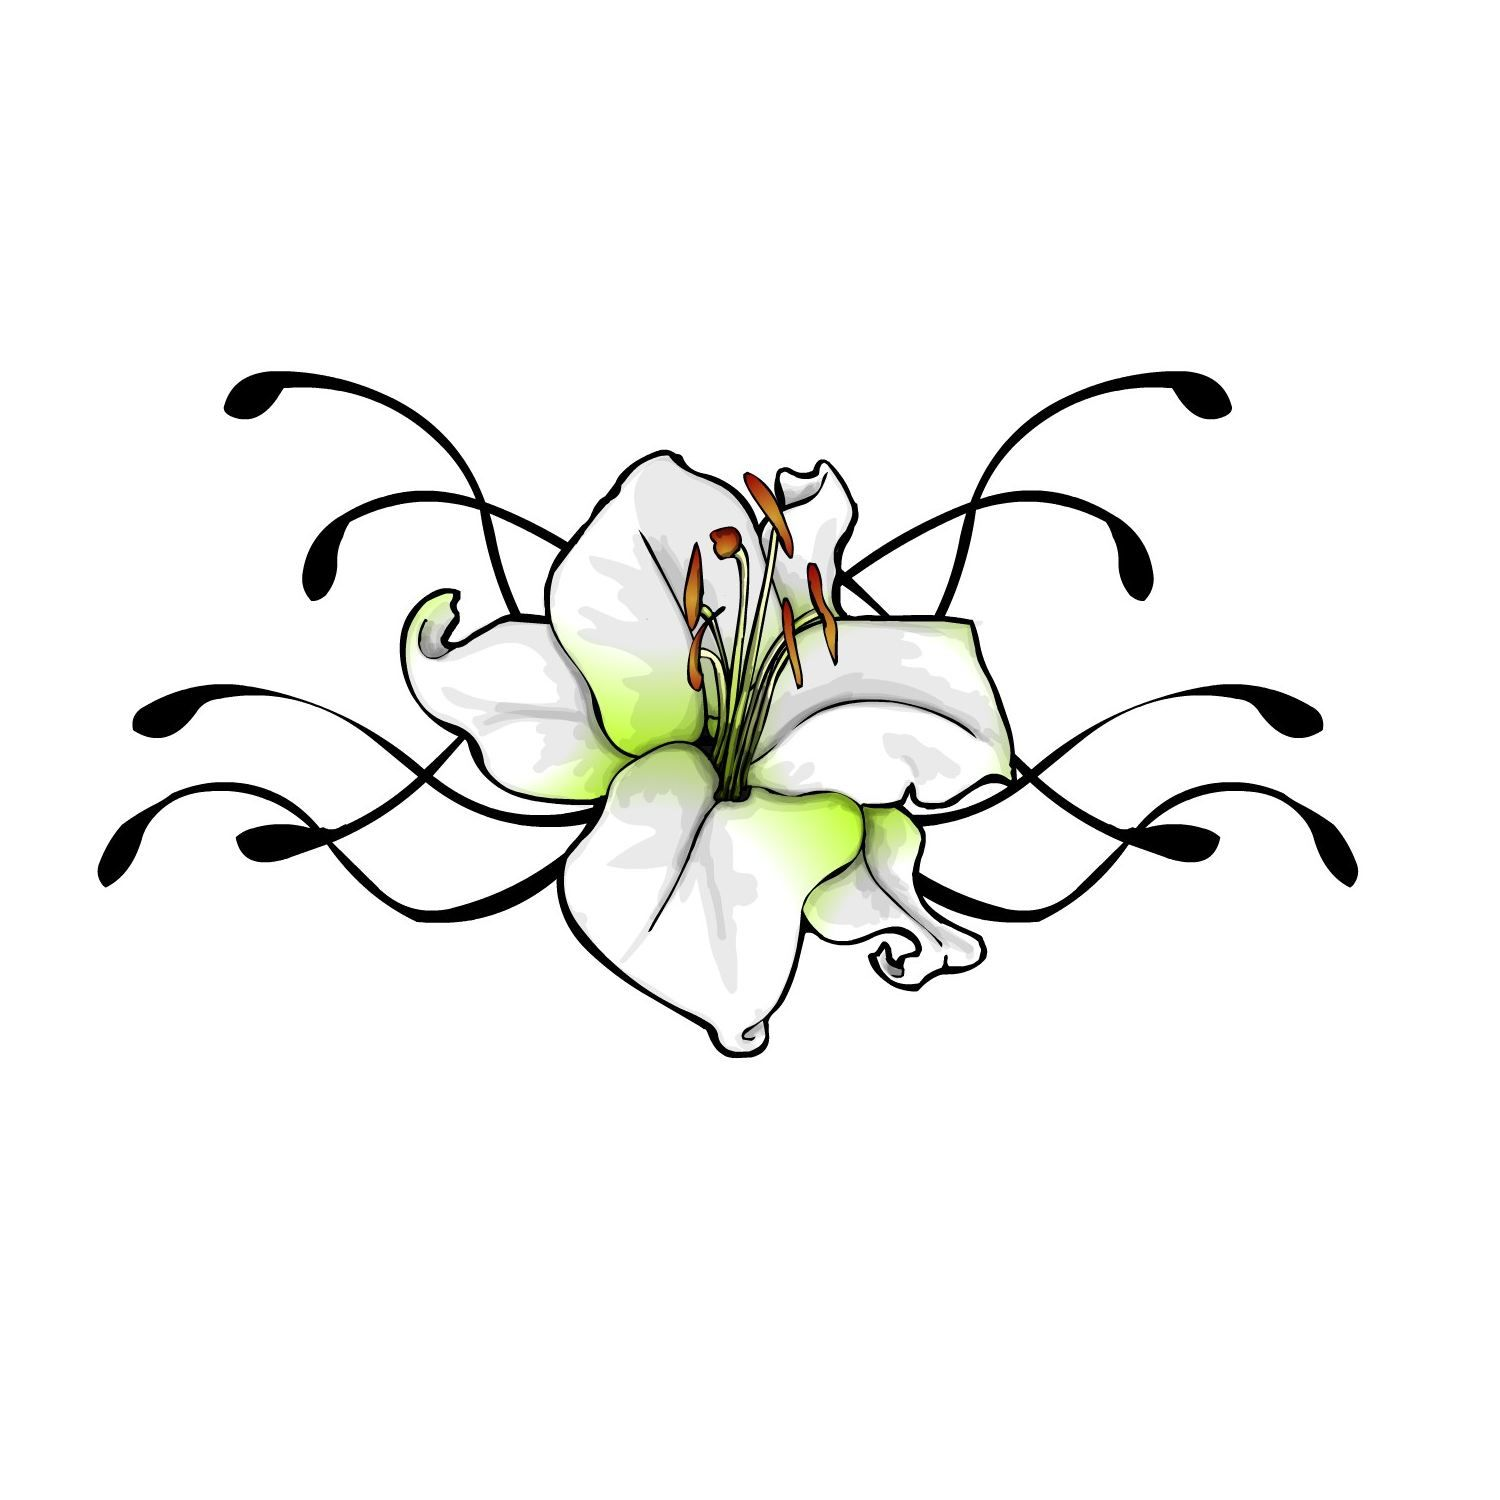 tulip flower tattoo designs | Drawings of flowers and ...